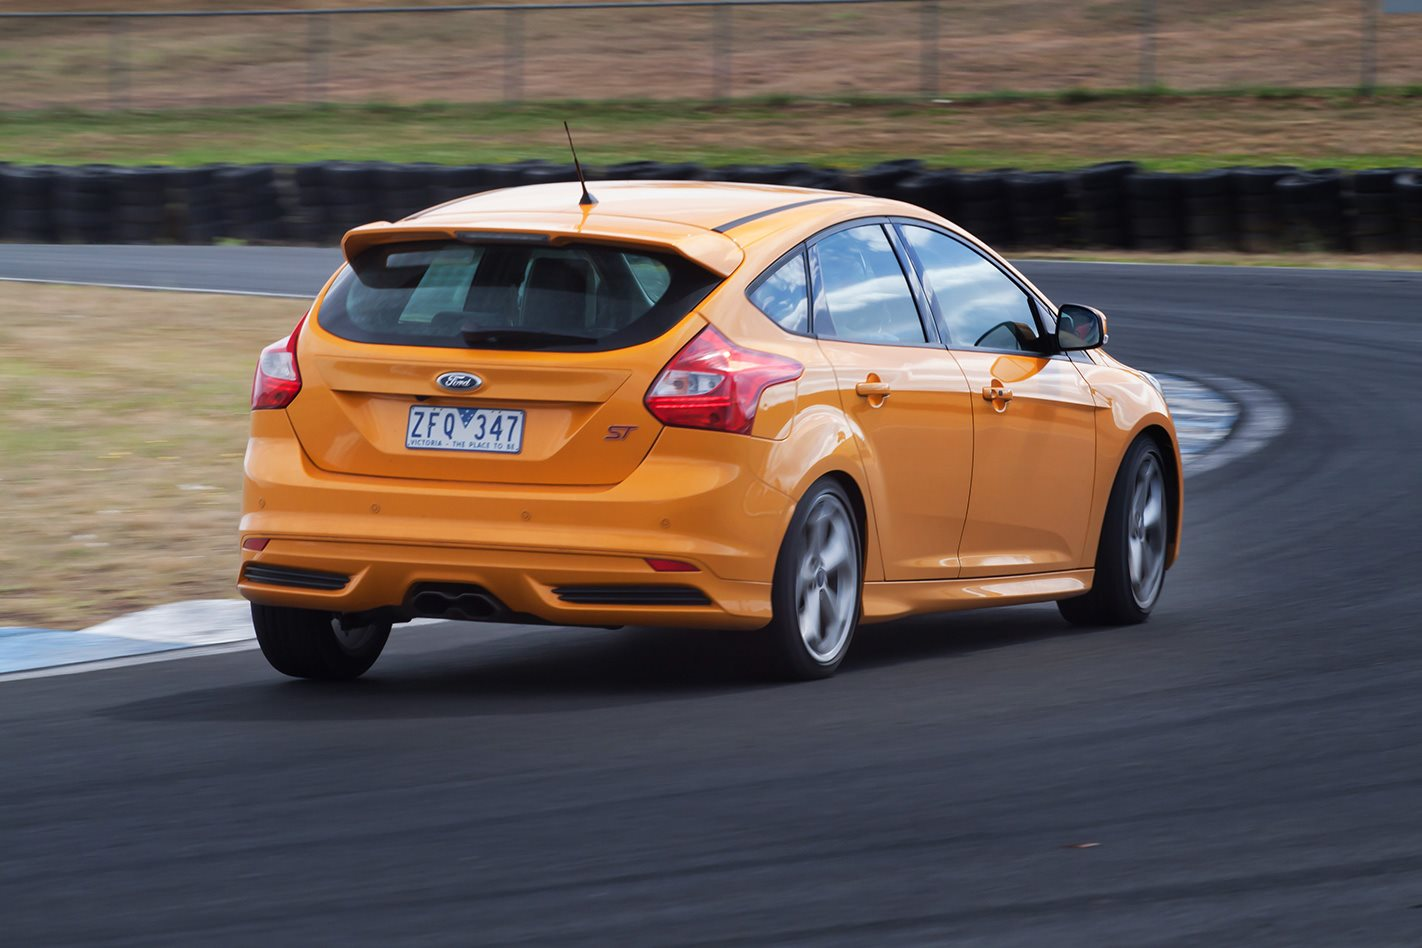 2013-Ford-Focus-ST-rear.jpg